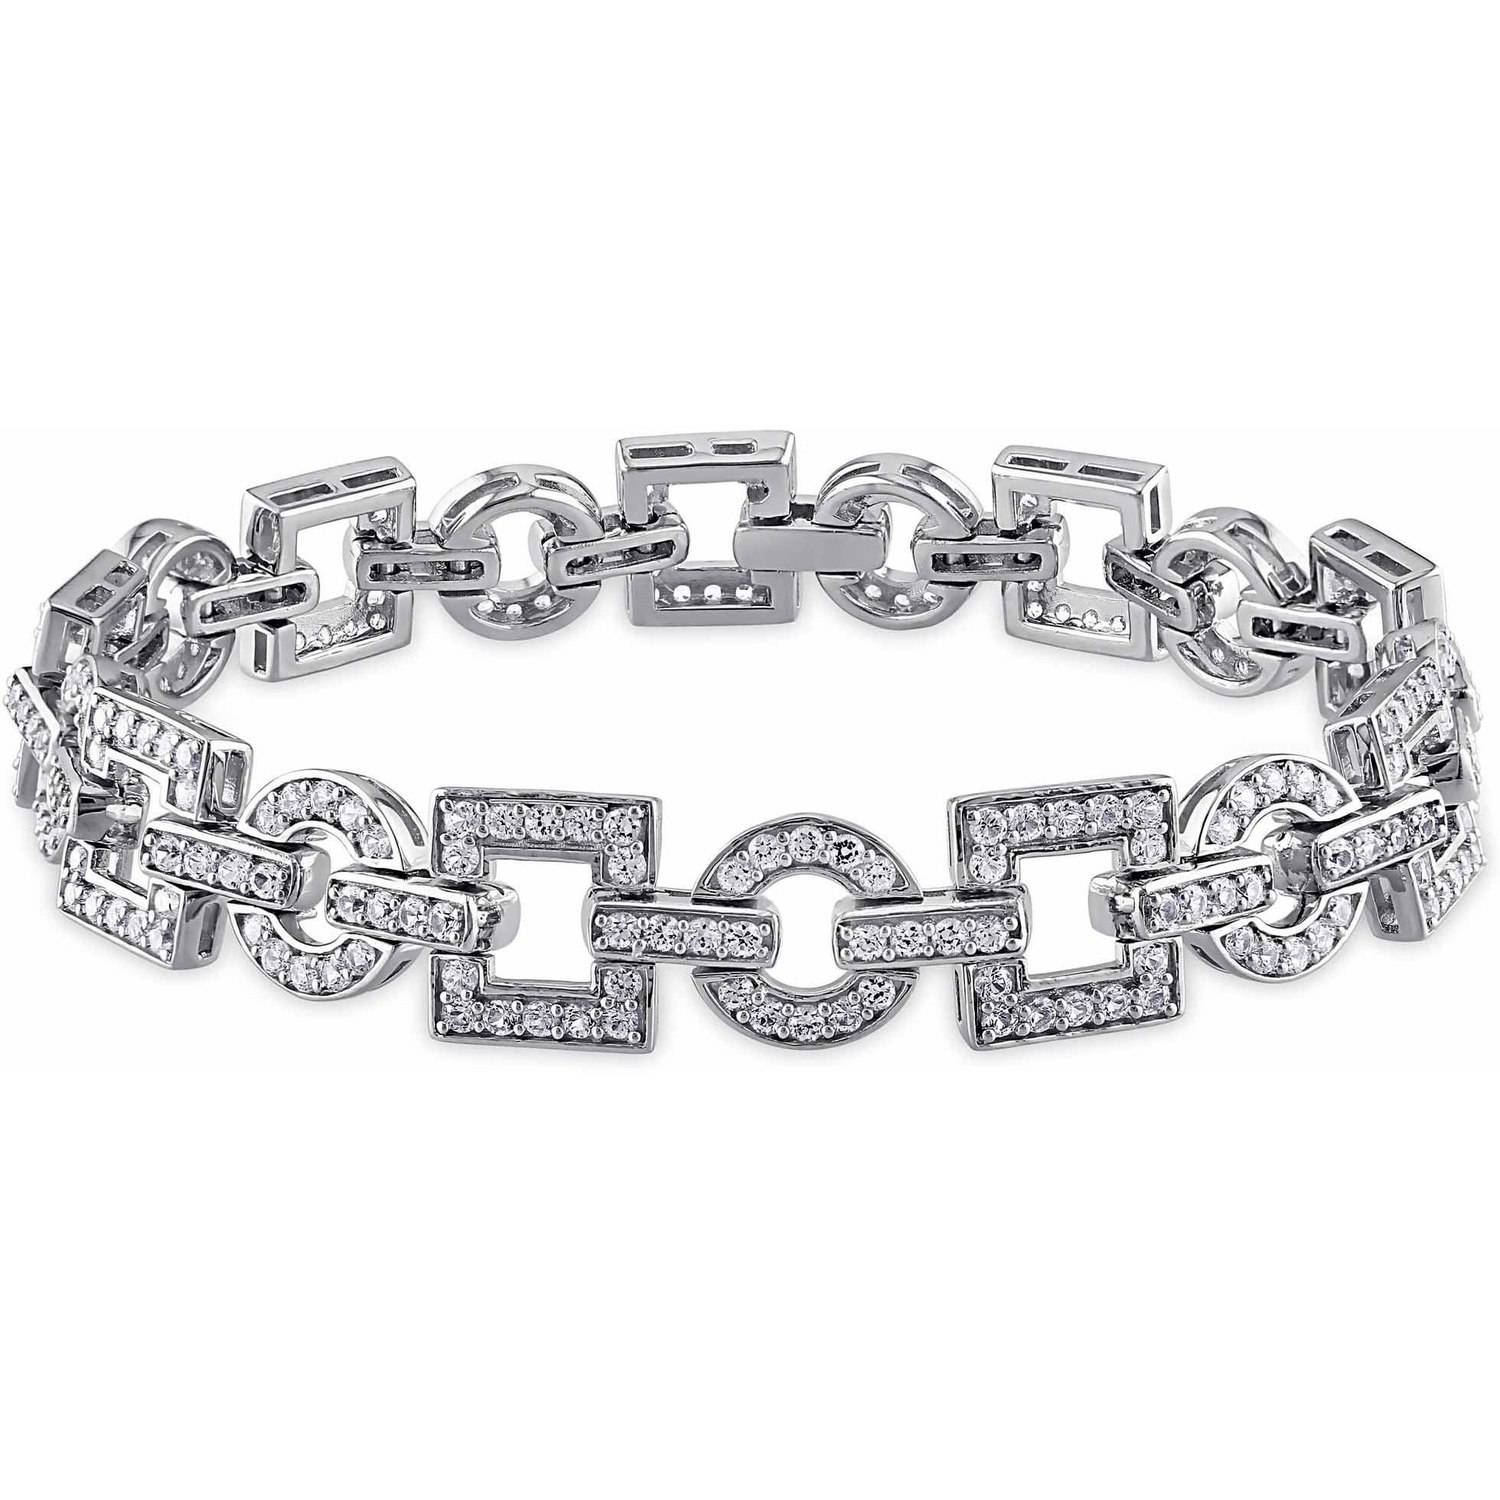 5-3/4 Carat T.G.W. Created White Sapphire Sterling Silver Fashion Bracelet, 7.25""